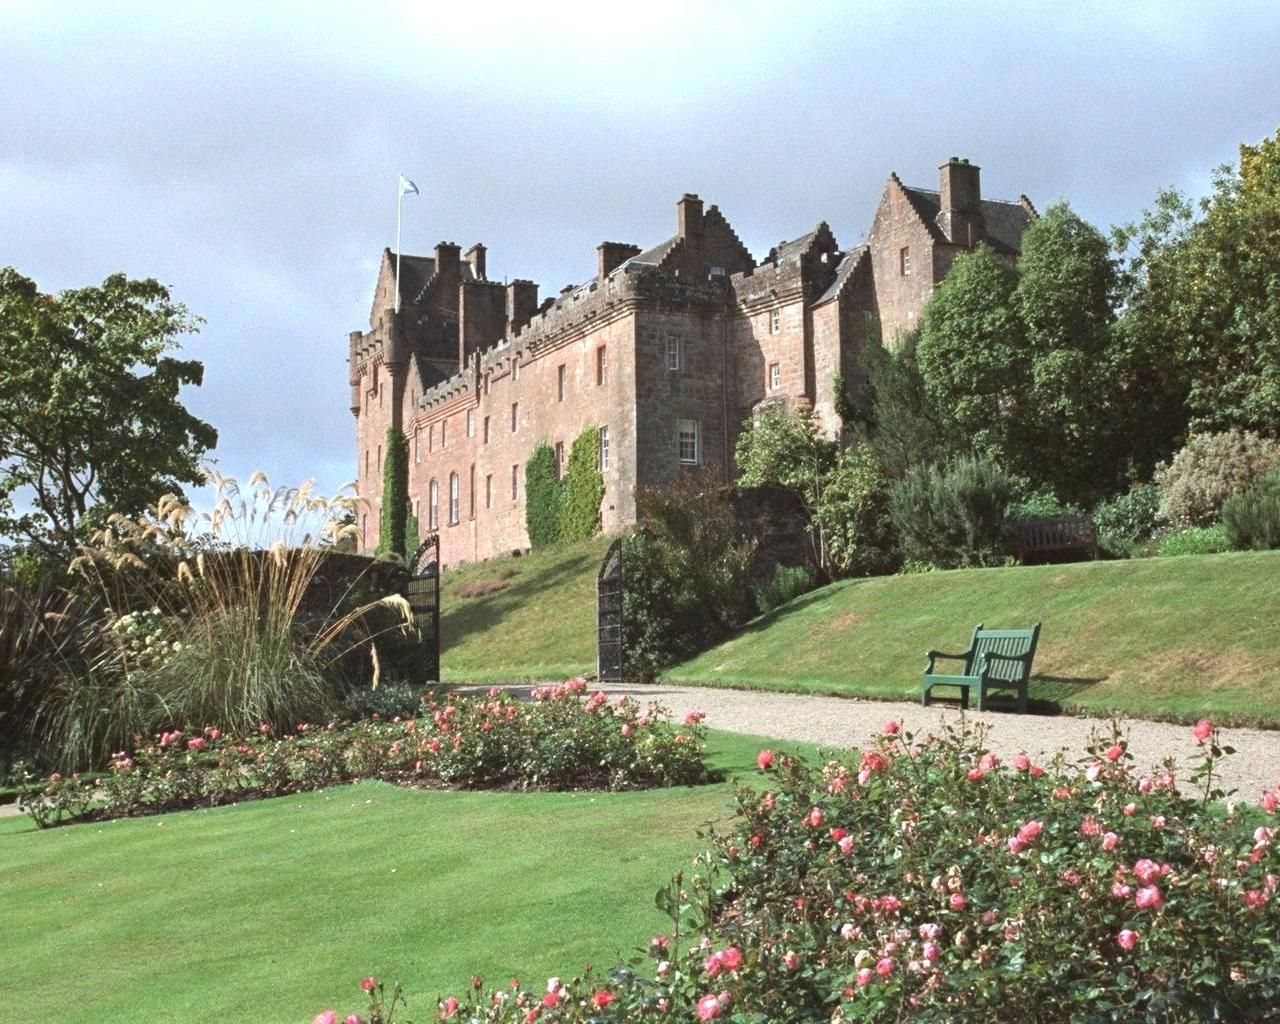 brodick castle | view from the walled garden towards Brodick Castle